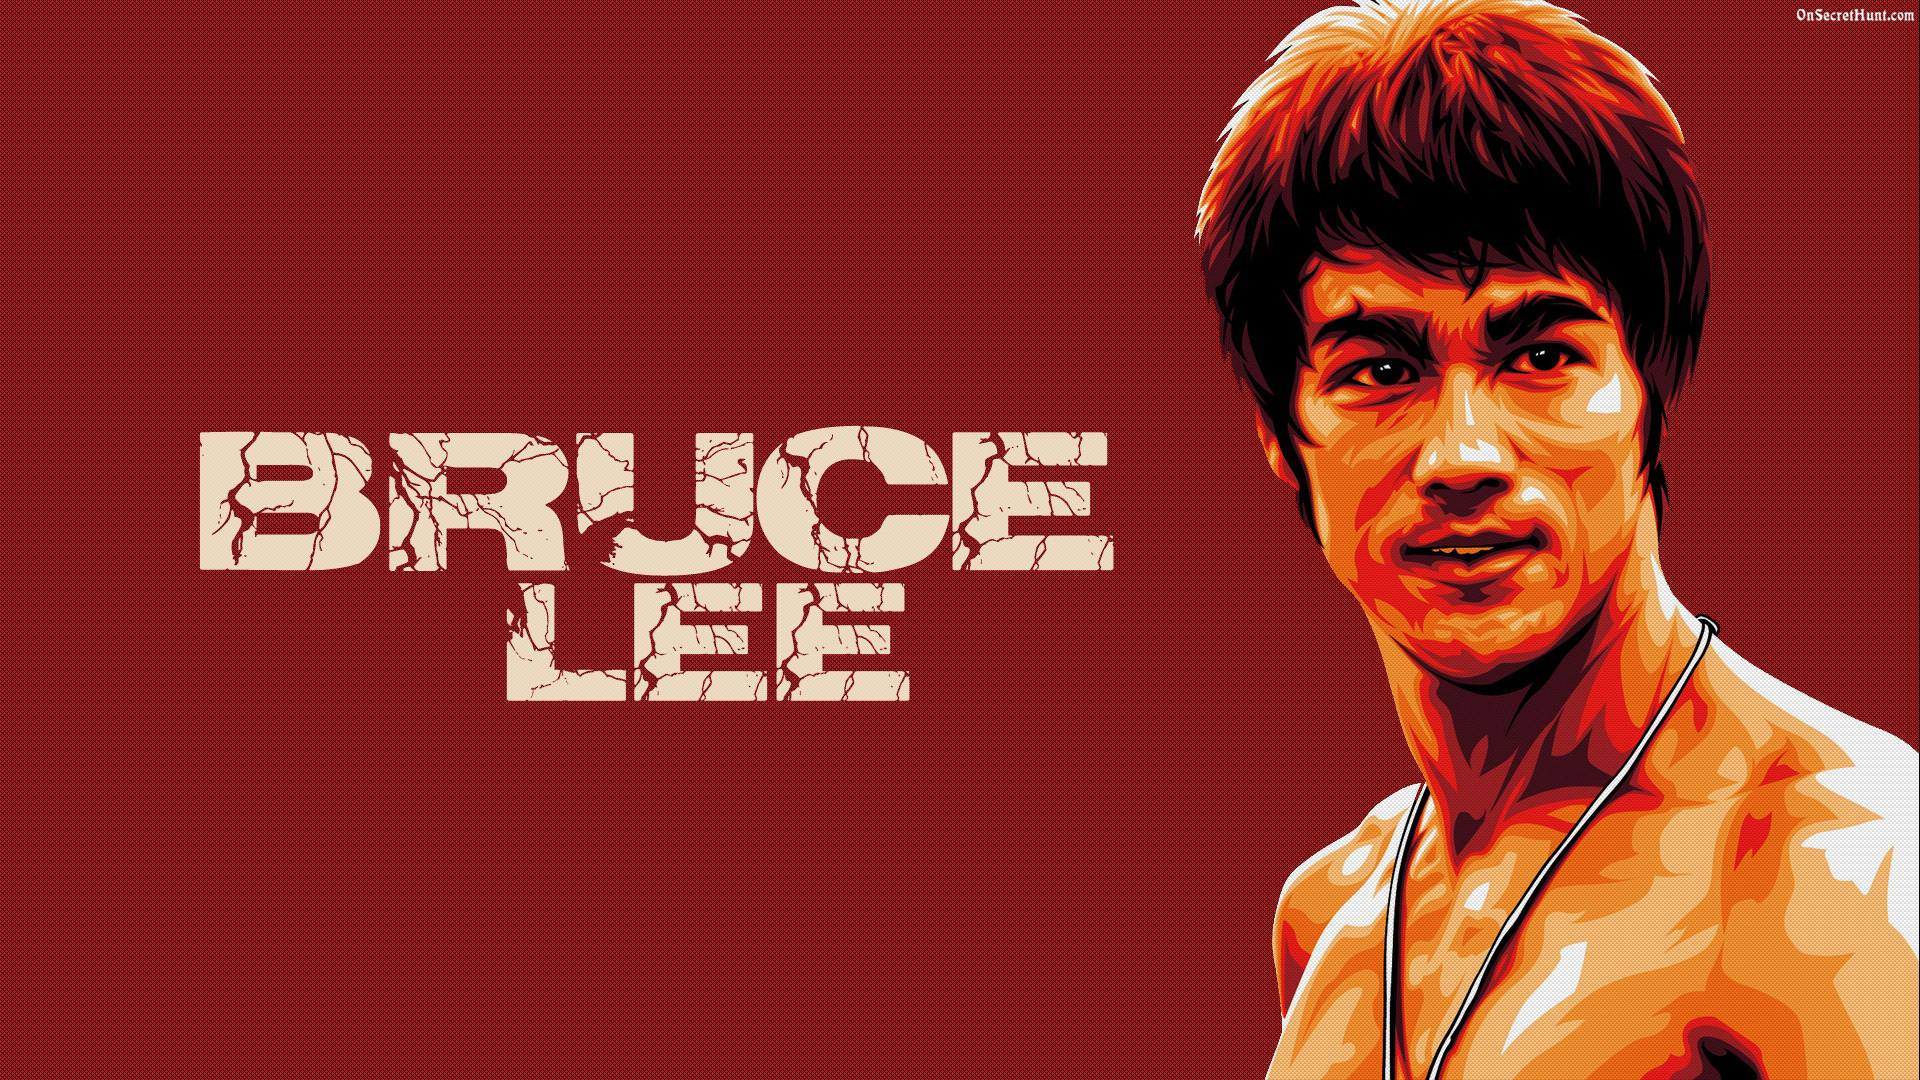 Bruce Lee Wallpapers HD A11 - HD Desktop Wallpapers | 4k HD